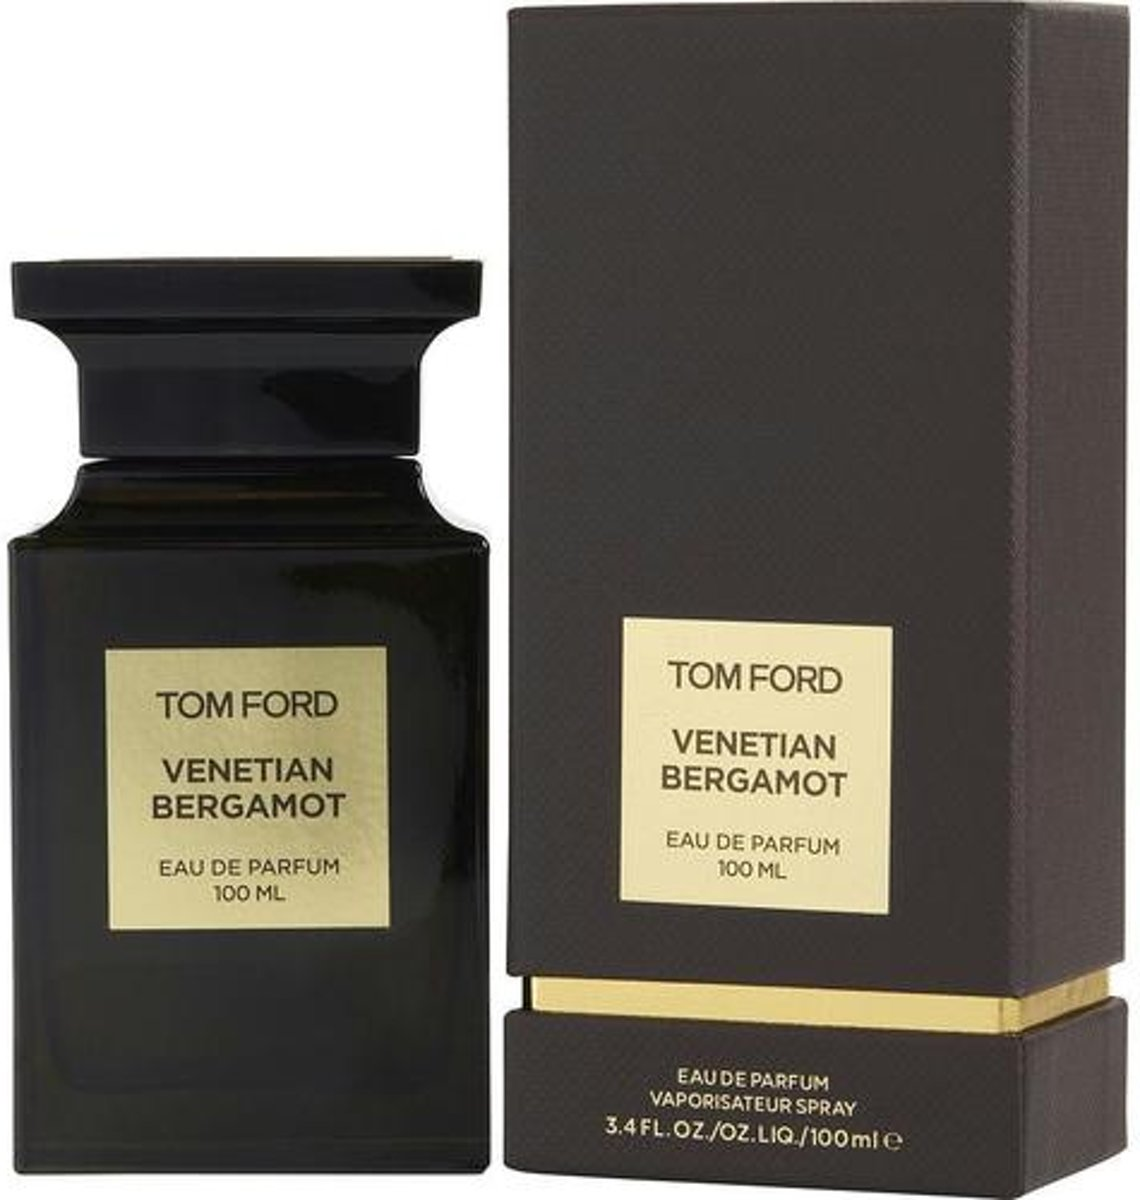 Tom Ford Venetian Bergamot - 100 ml - eau de parfum spray - unisex